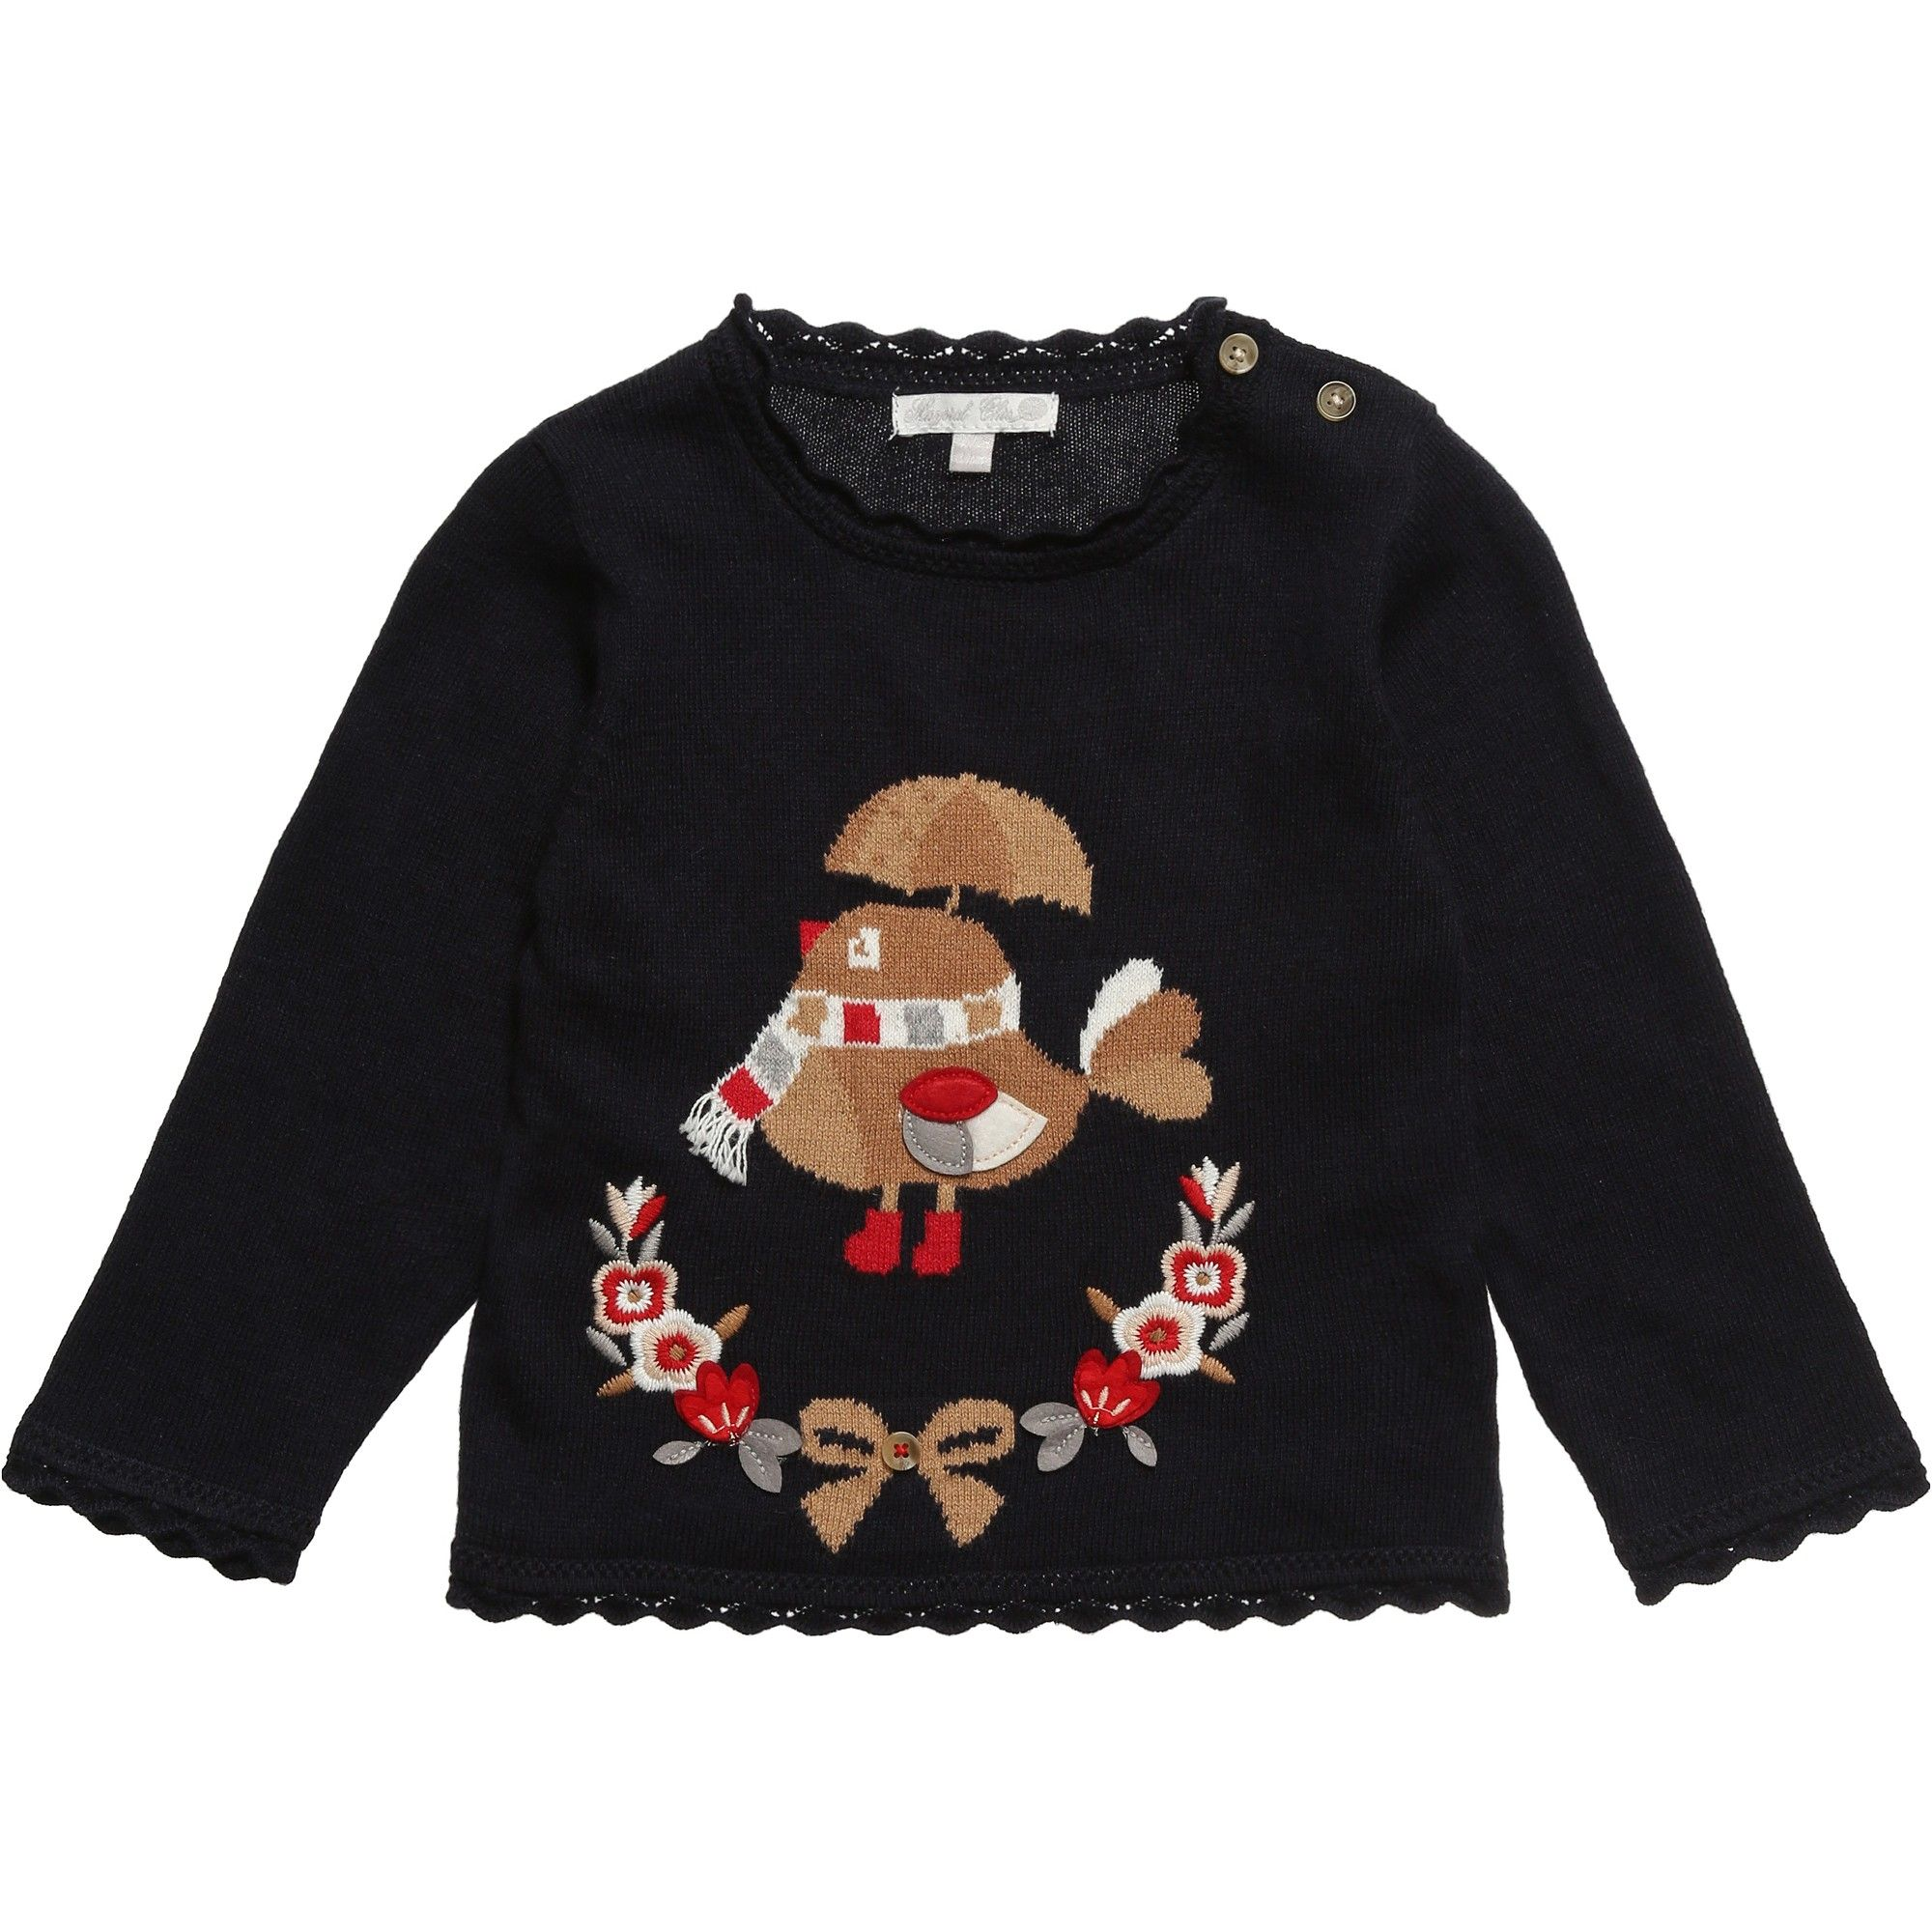 14a3e22af48a Mayoral Baby Girls Navy Blue Knitted Sweater